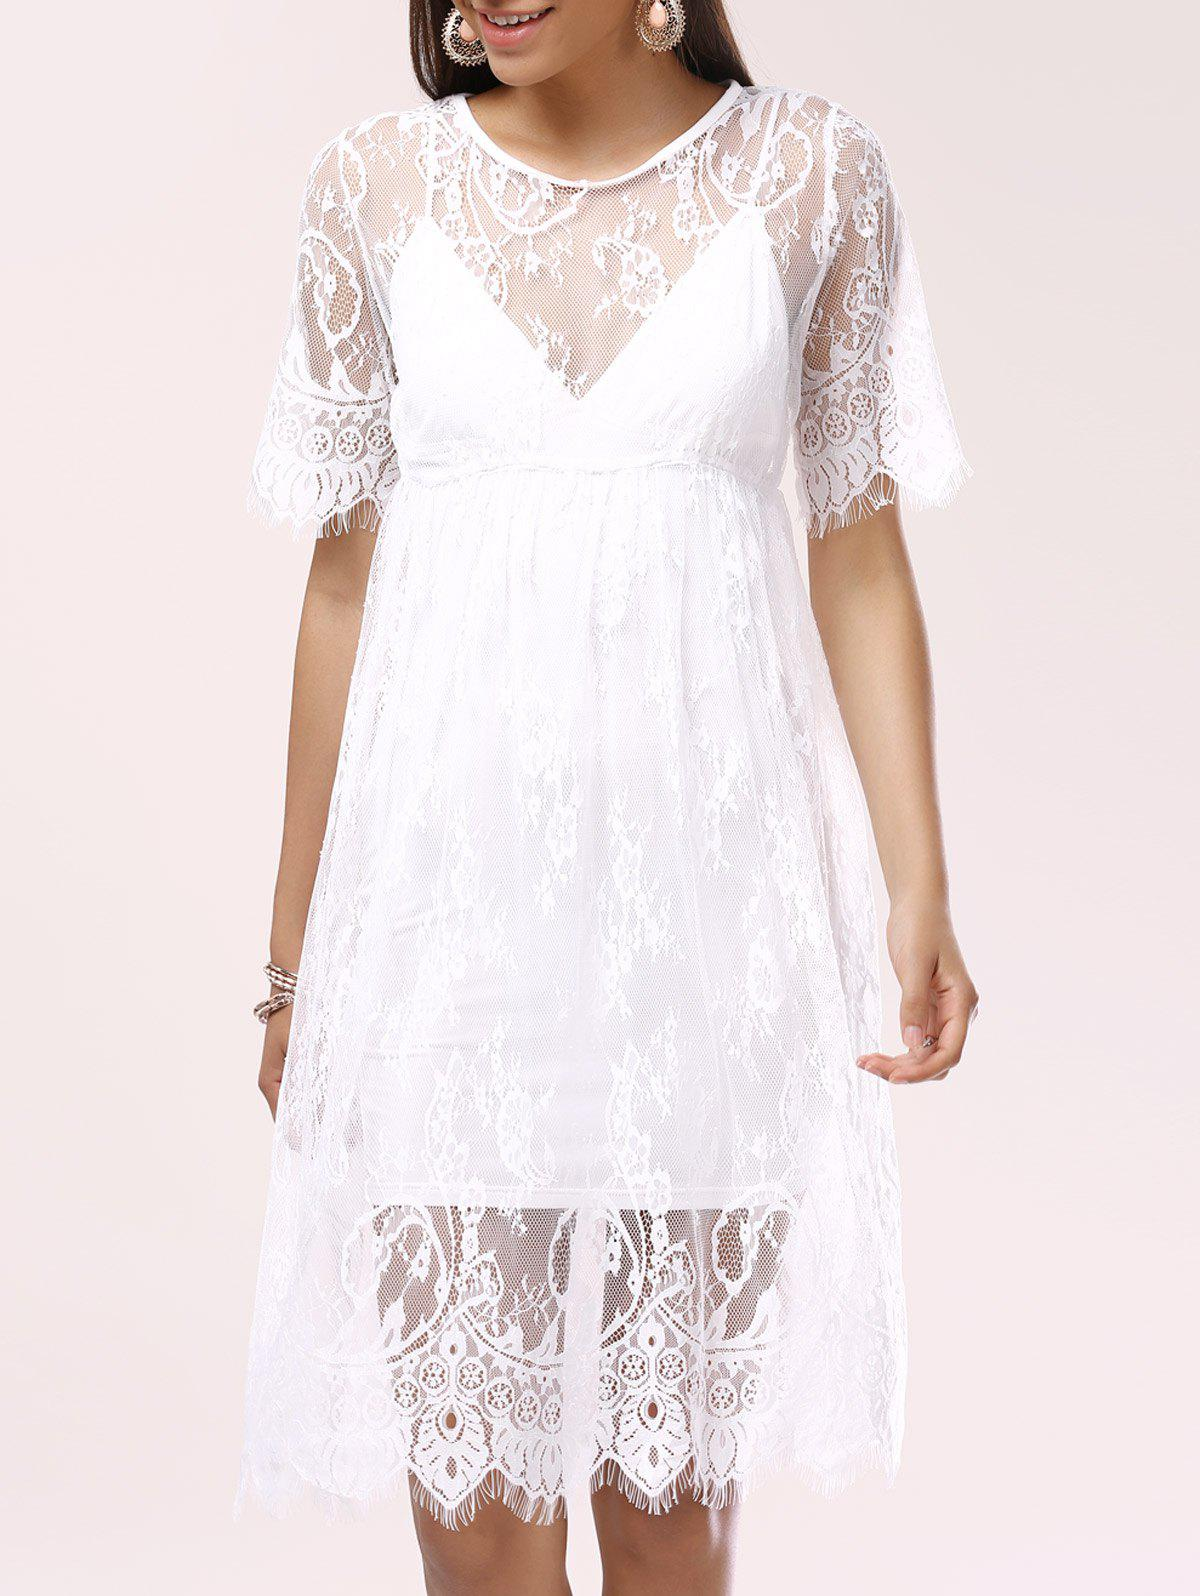 Charming See-Through Lace Women's Cover-Up